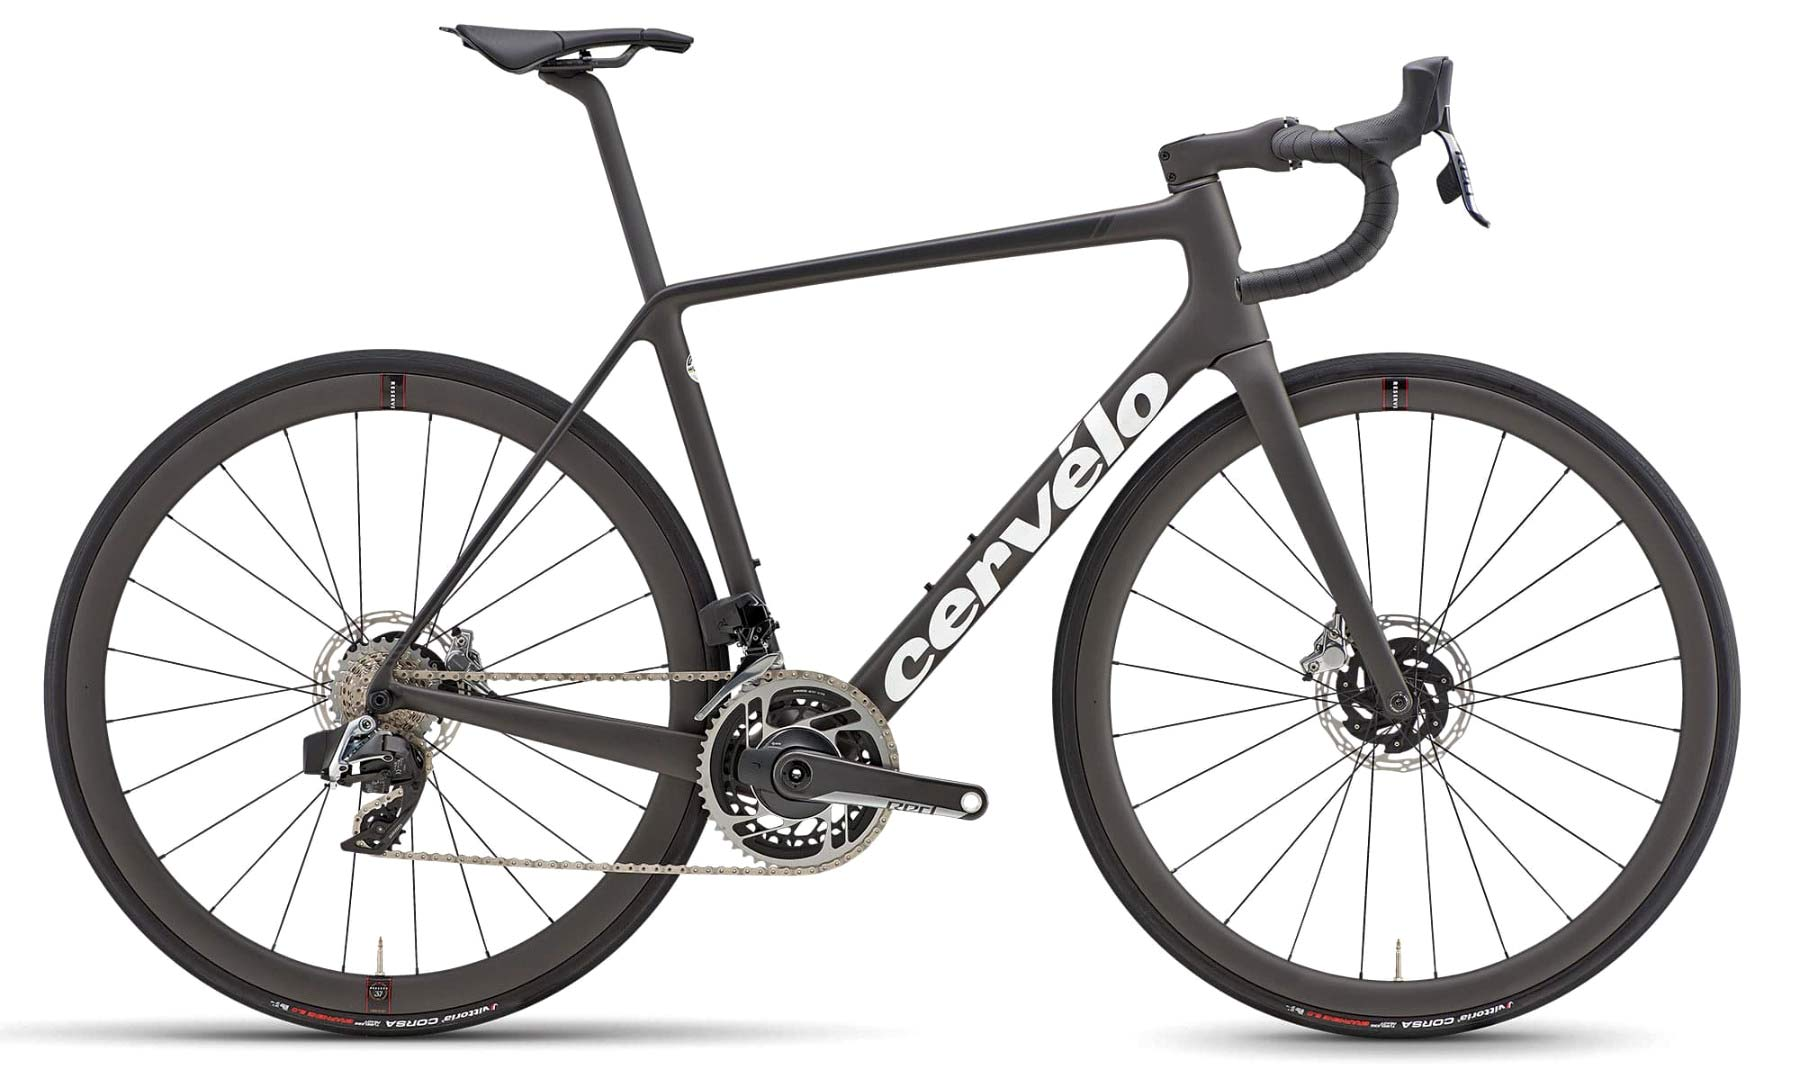 2022 Cervelo R5 Disc lightweight carbon all-rounder classic road bike,SRAM Red AXS